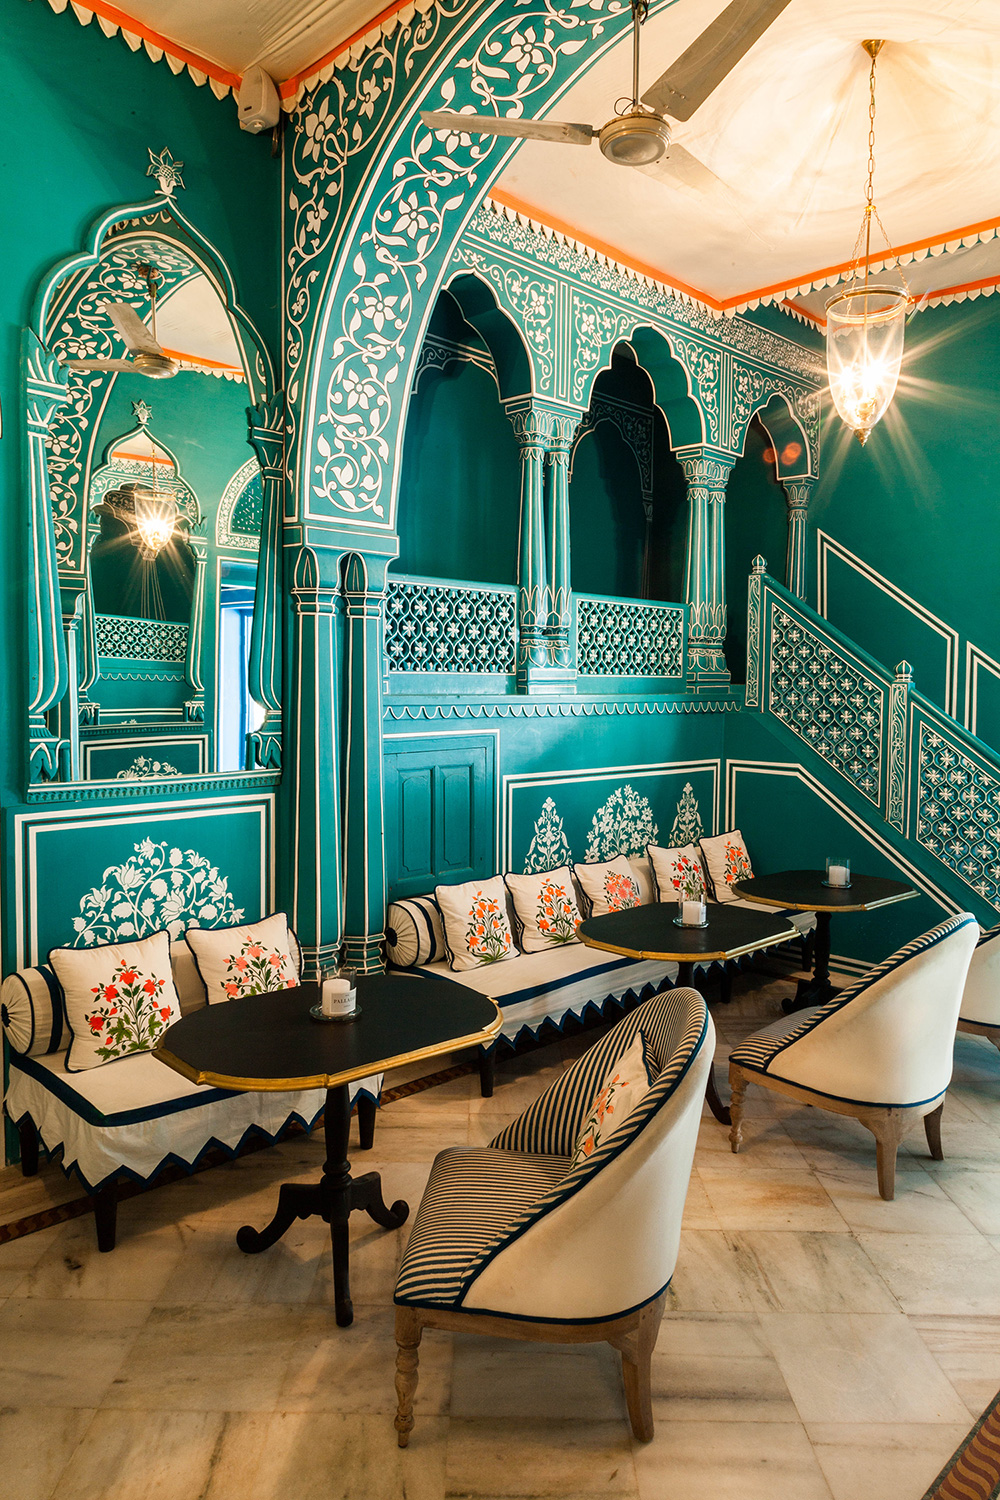 Bar Palladio - classical Indian archways and embellishments